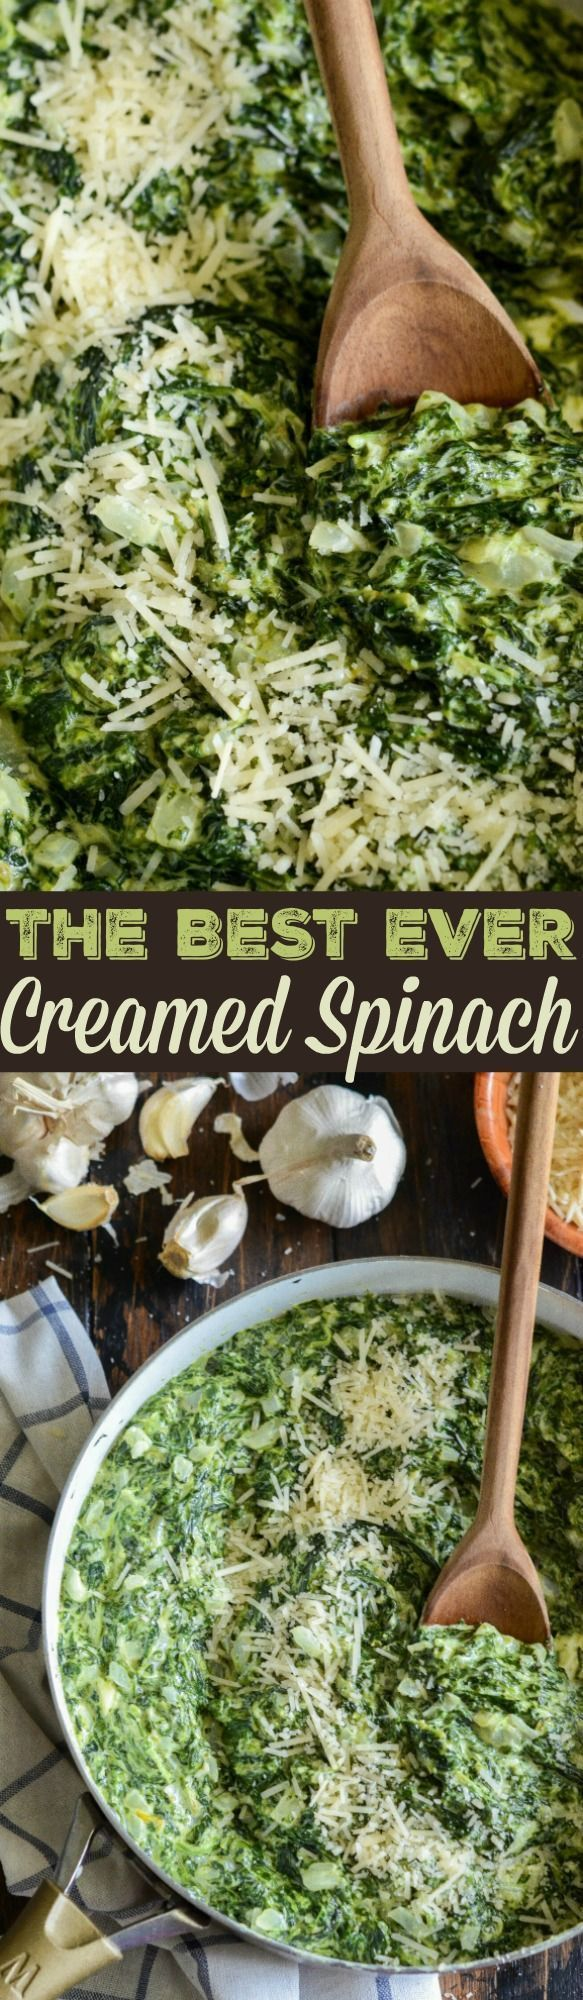 The Best Creamed Spinach: my favorite steakhouse style, extra creamy, creamed spinach takes only 15 minutes to make and is LOW CARB!